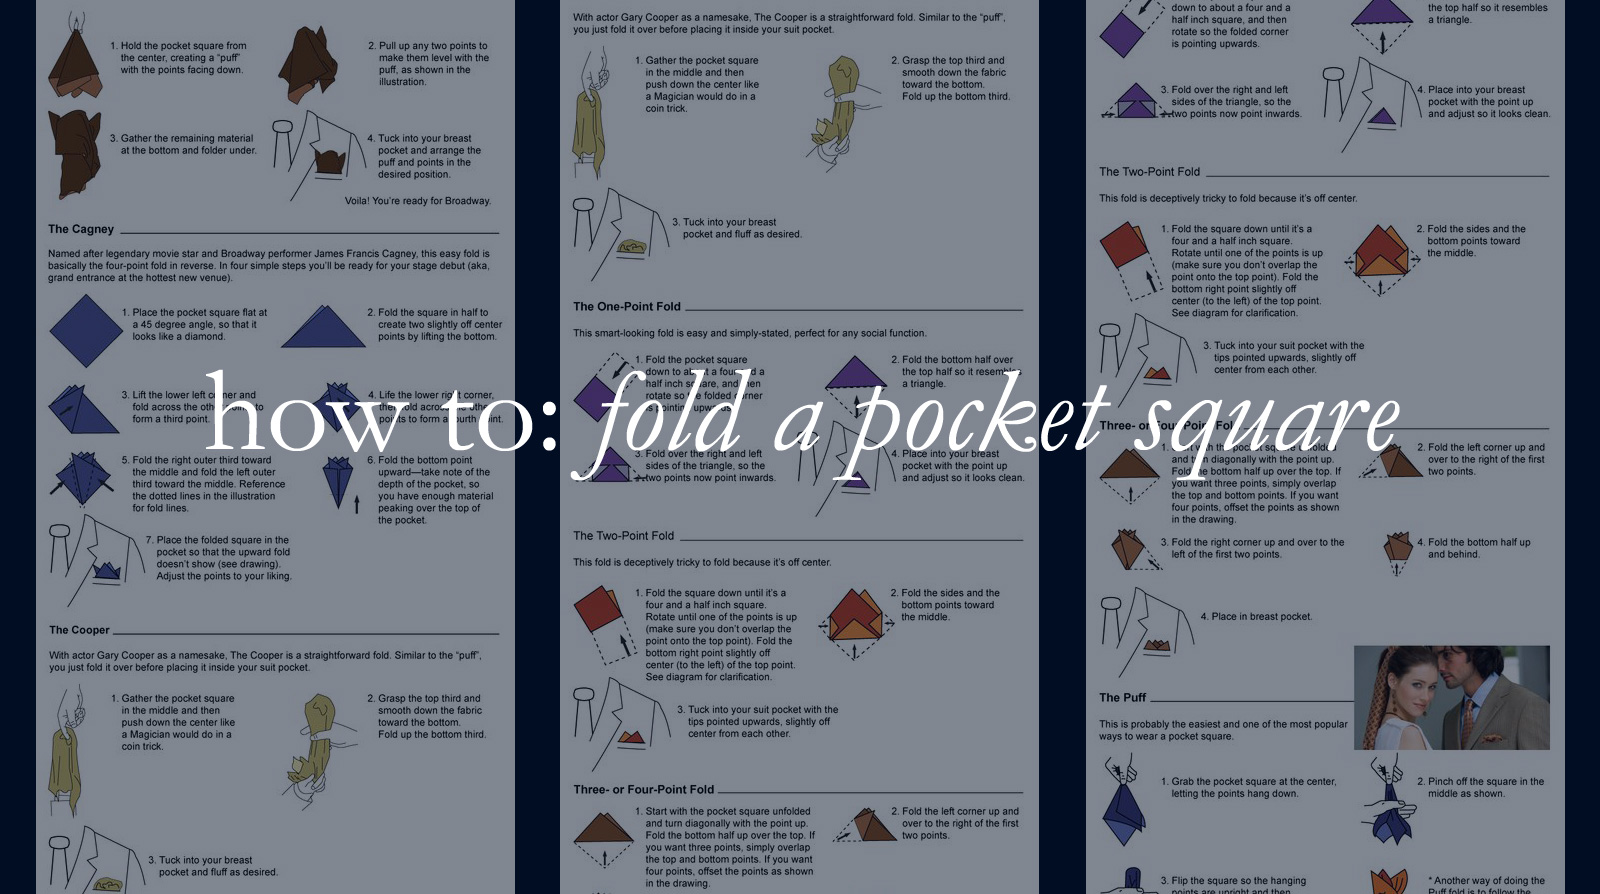 How to: fold a pocket square